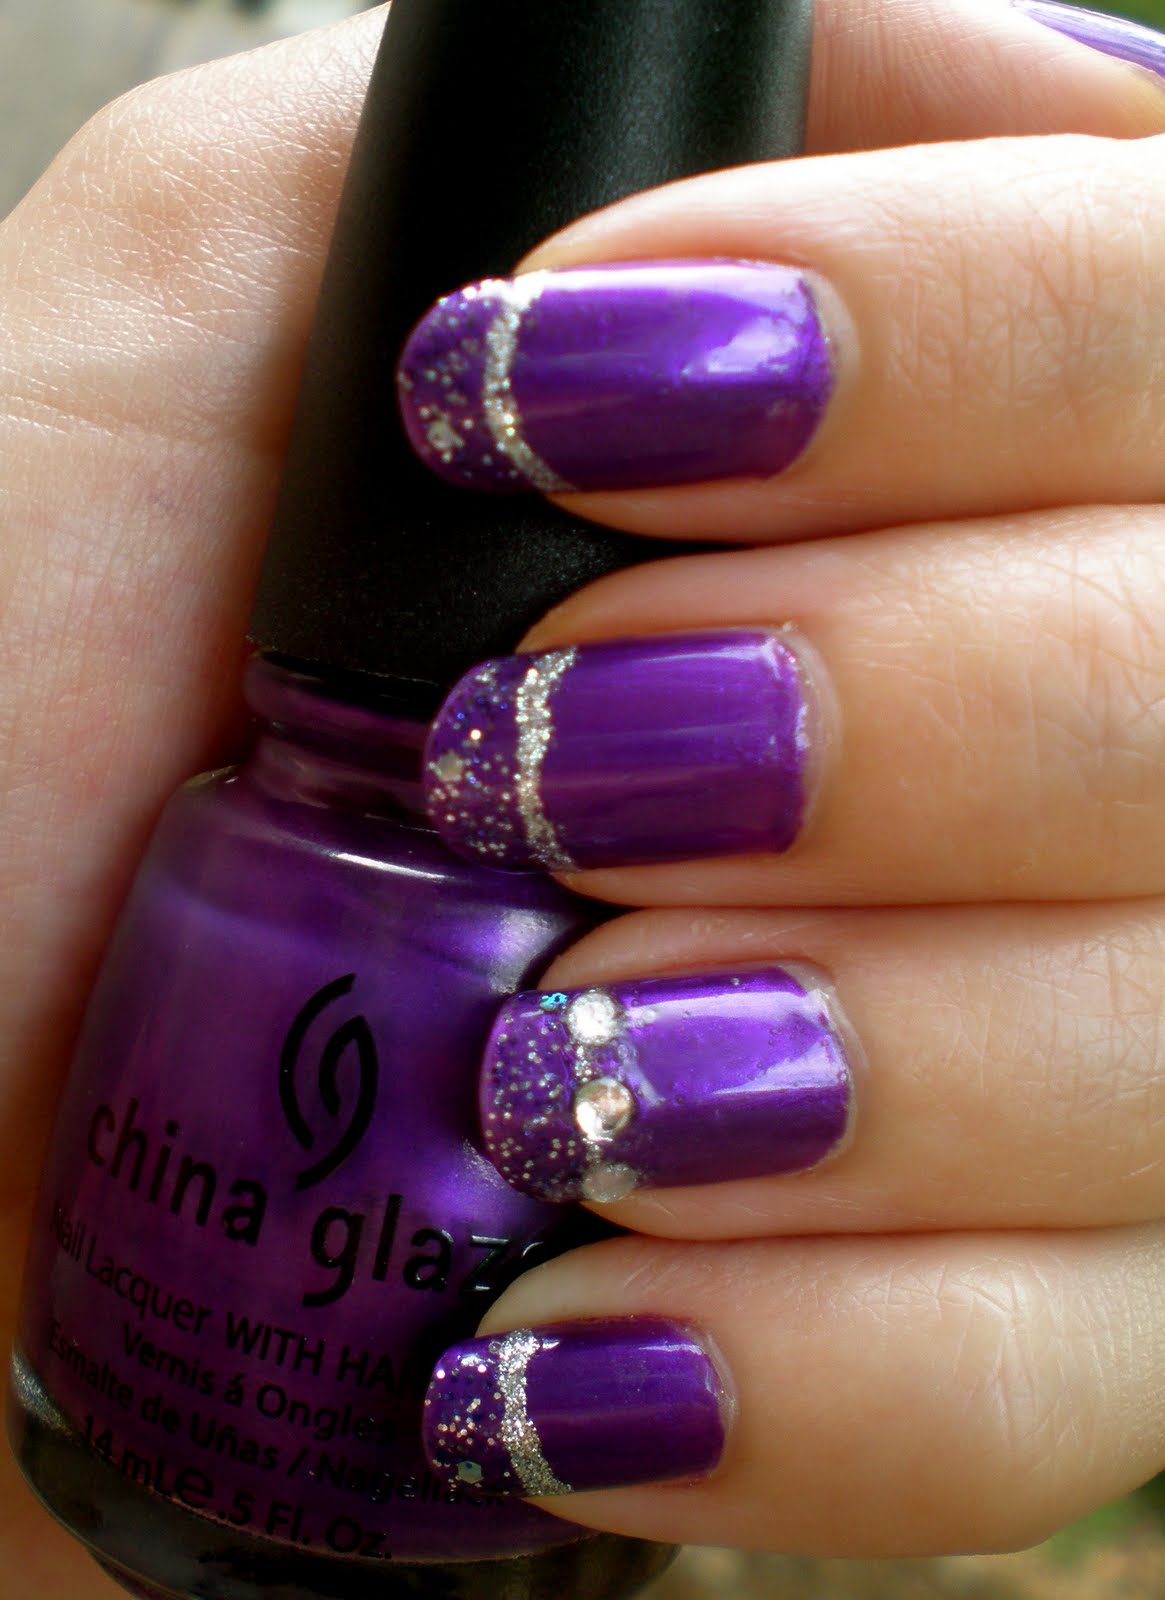 Purple Nails With Silver Glitter Stripes Design Nail Art - 65+ Purple And Silver Nail Art Design Ideas